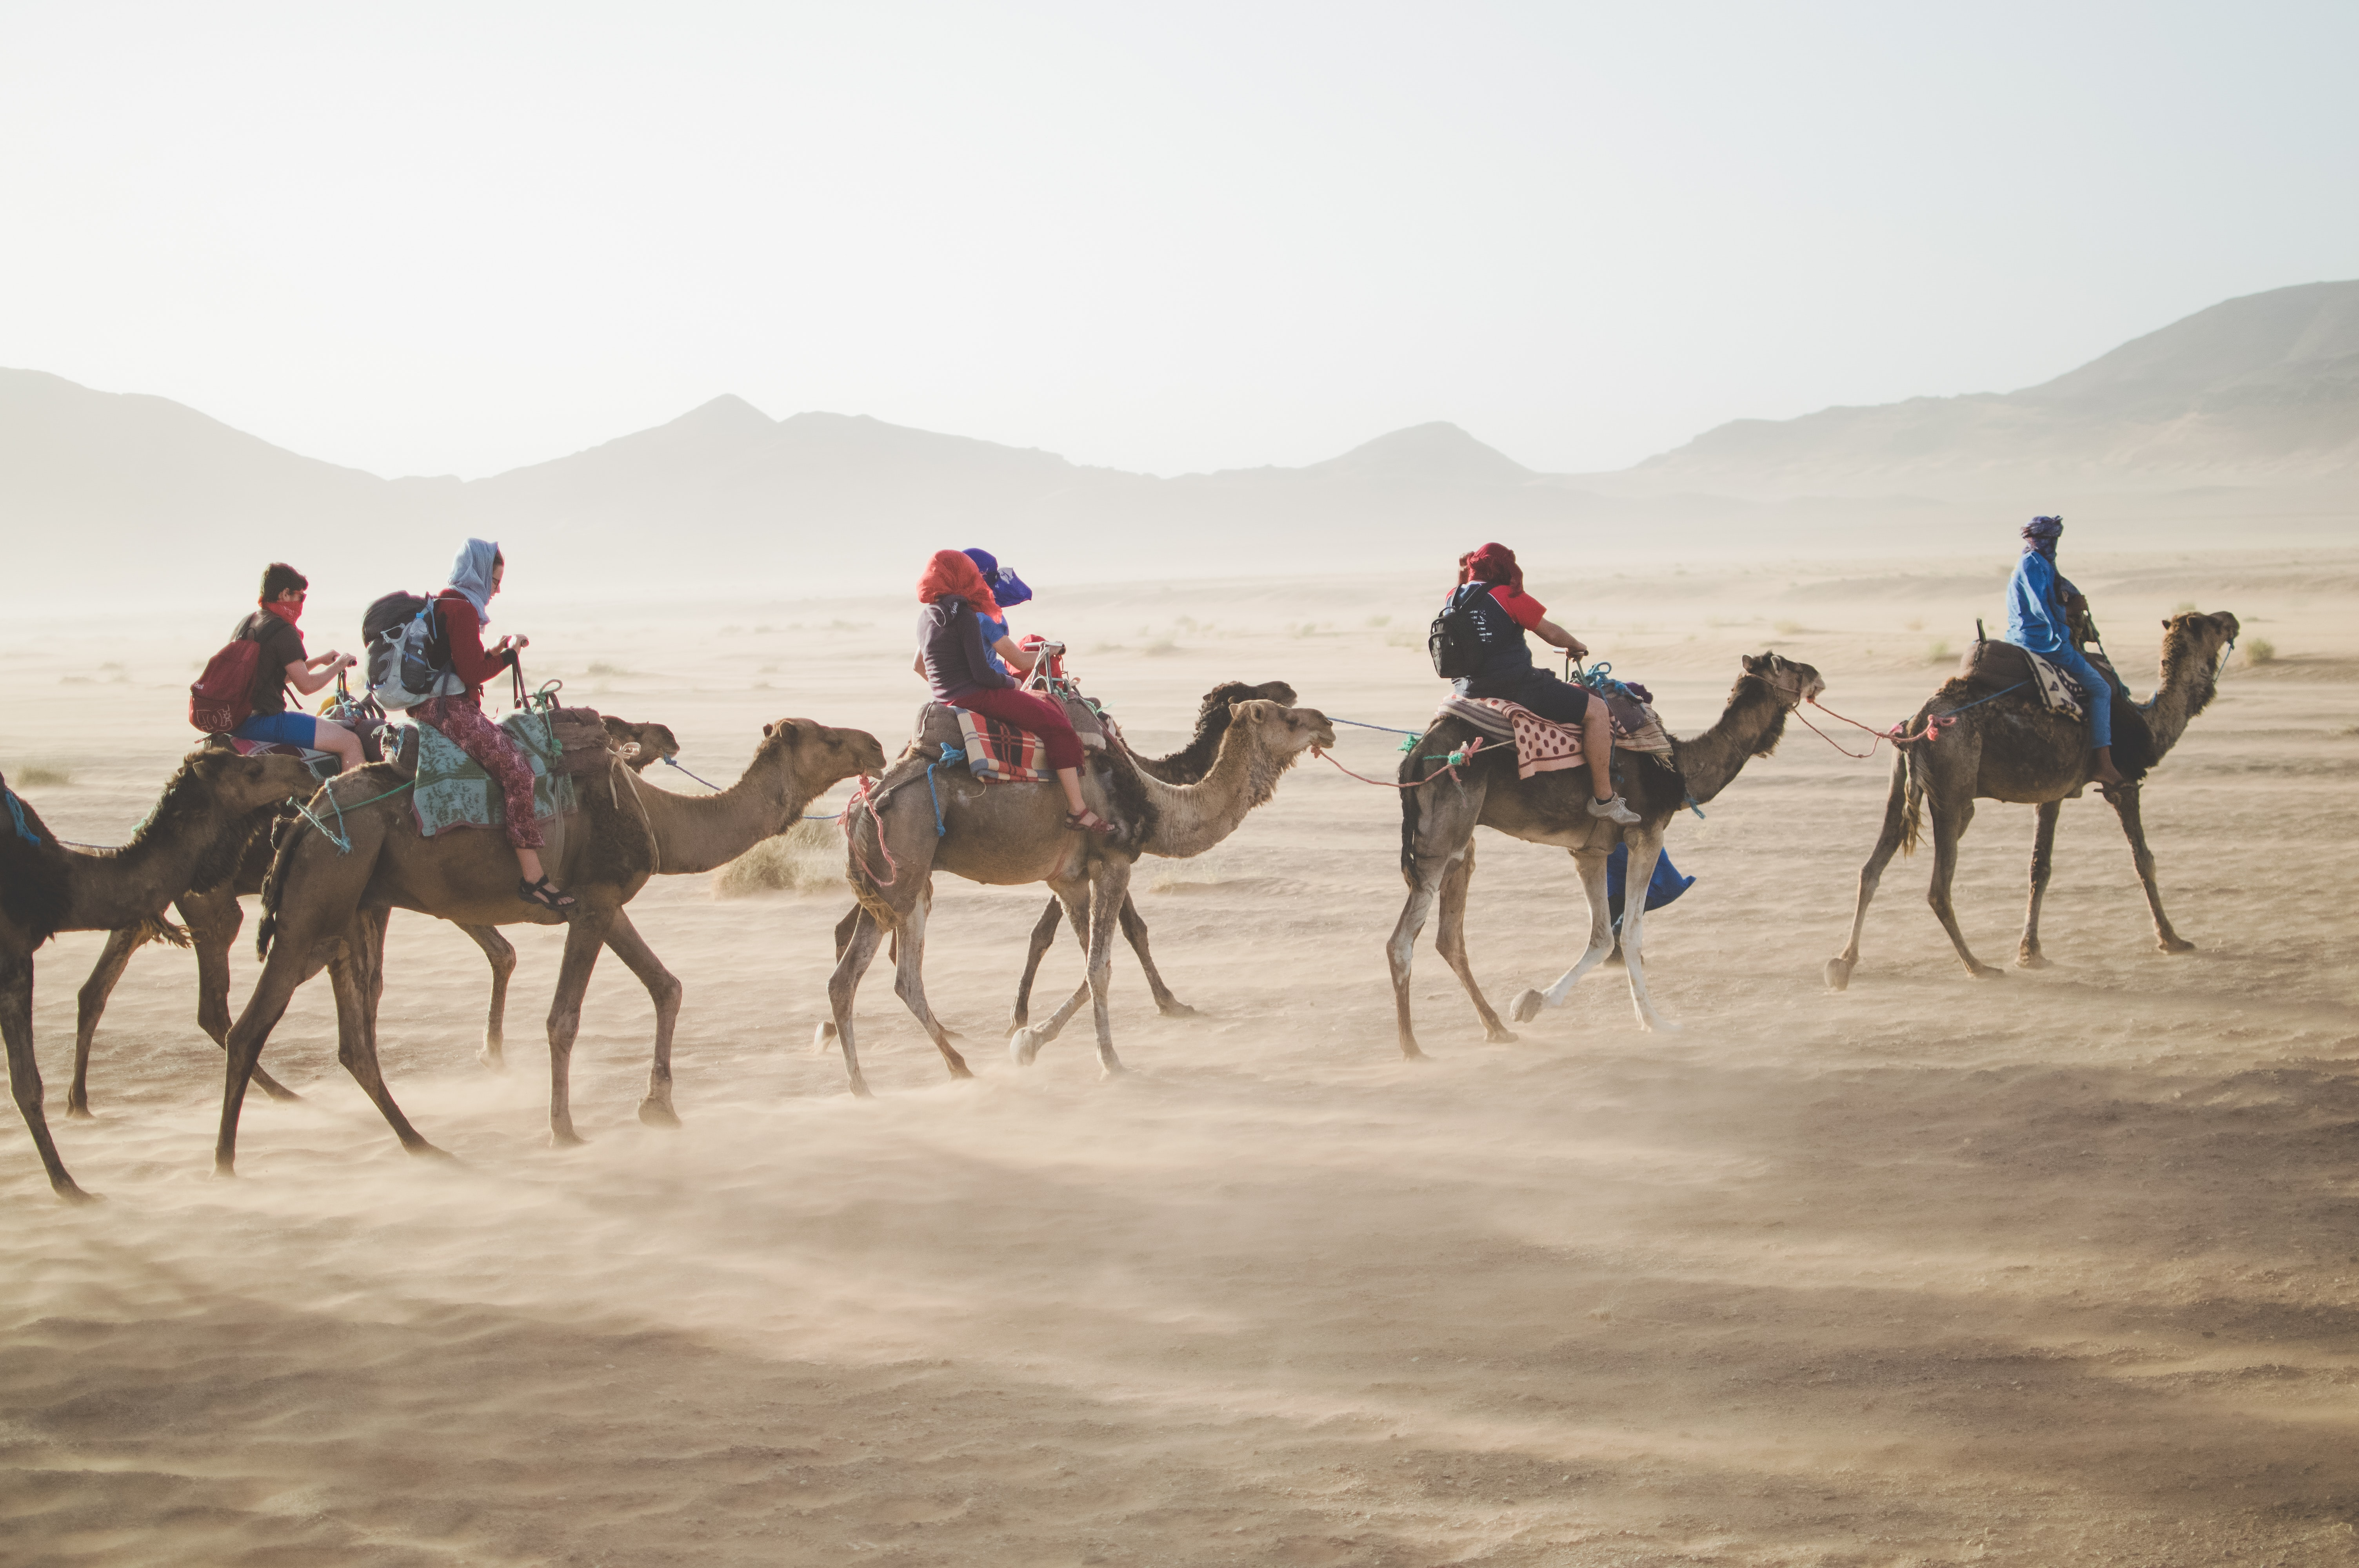 A group of young people riding camels across the Sahara Desert